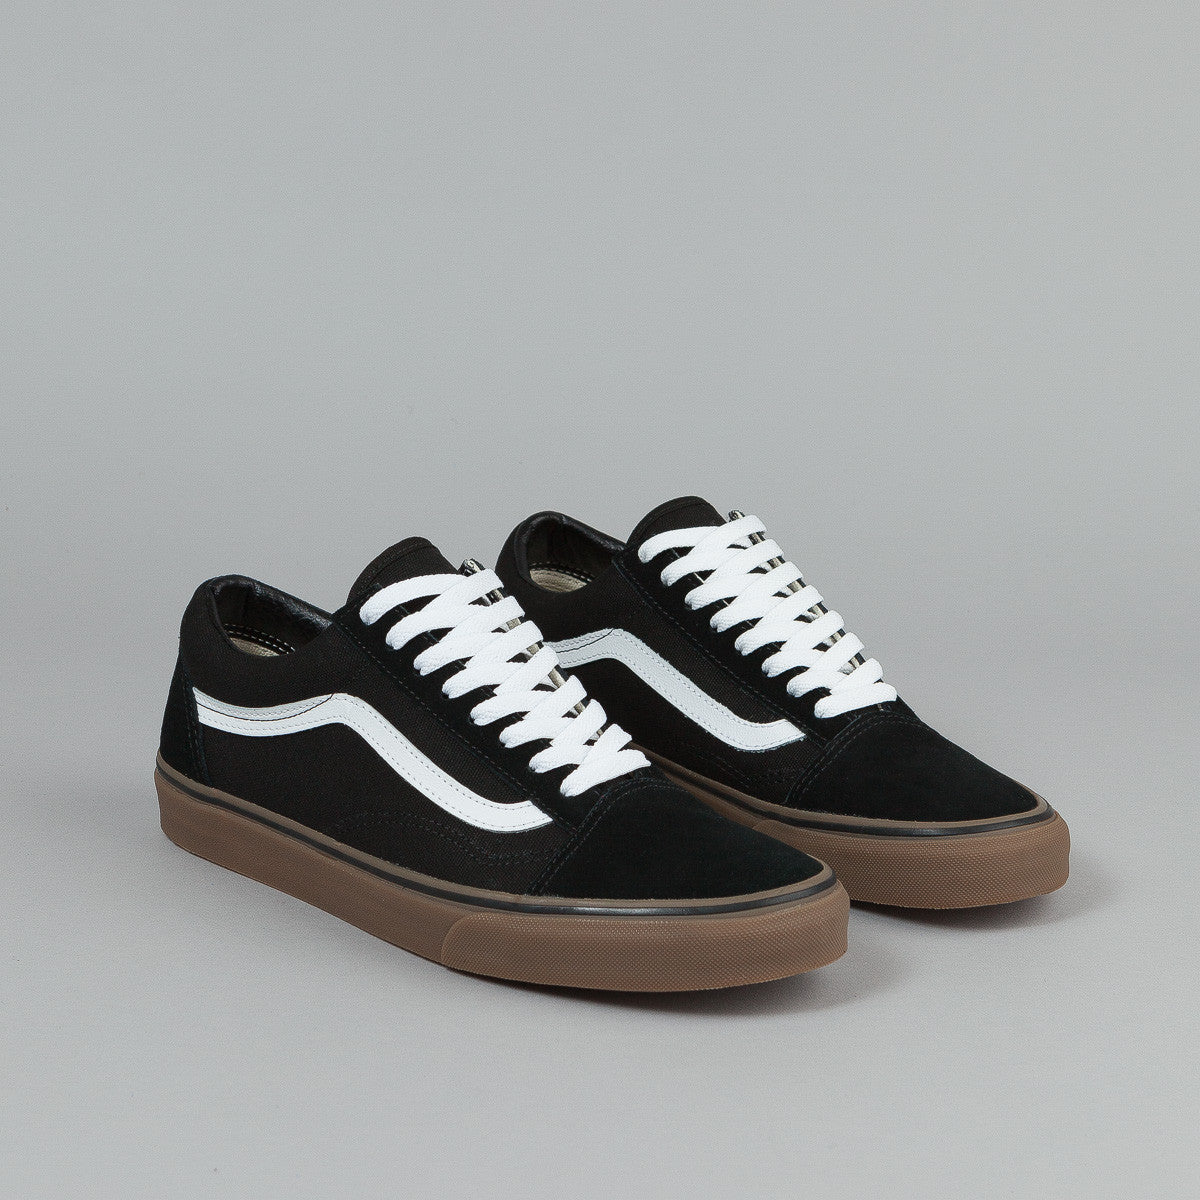 vans old skool gum sole black and white